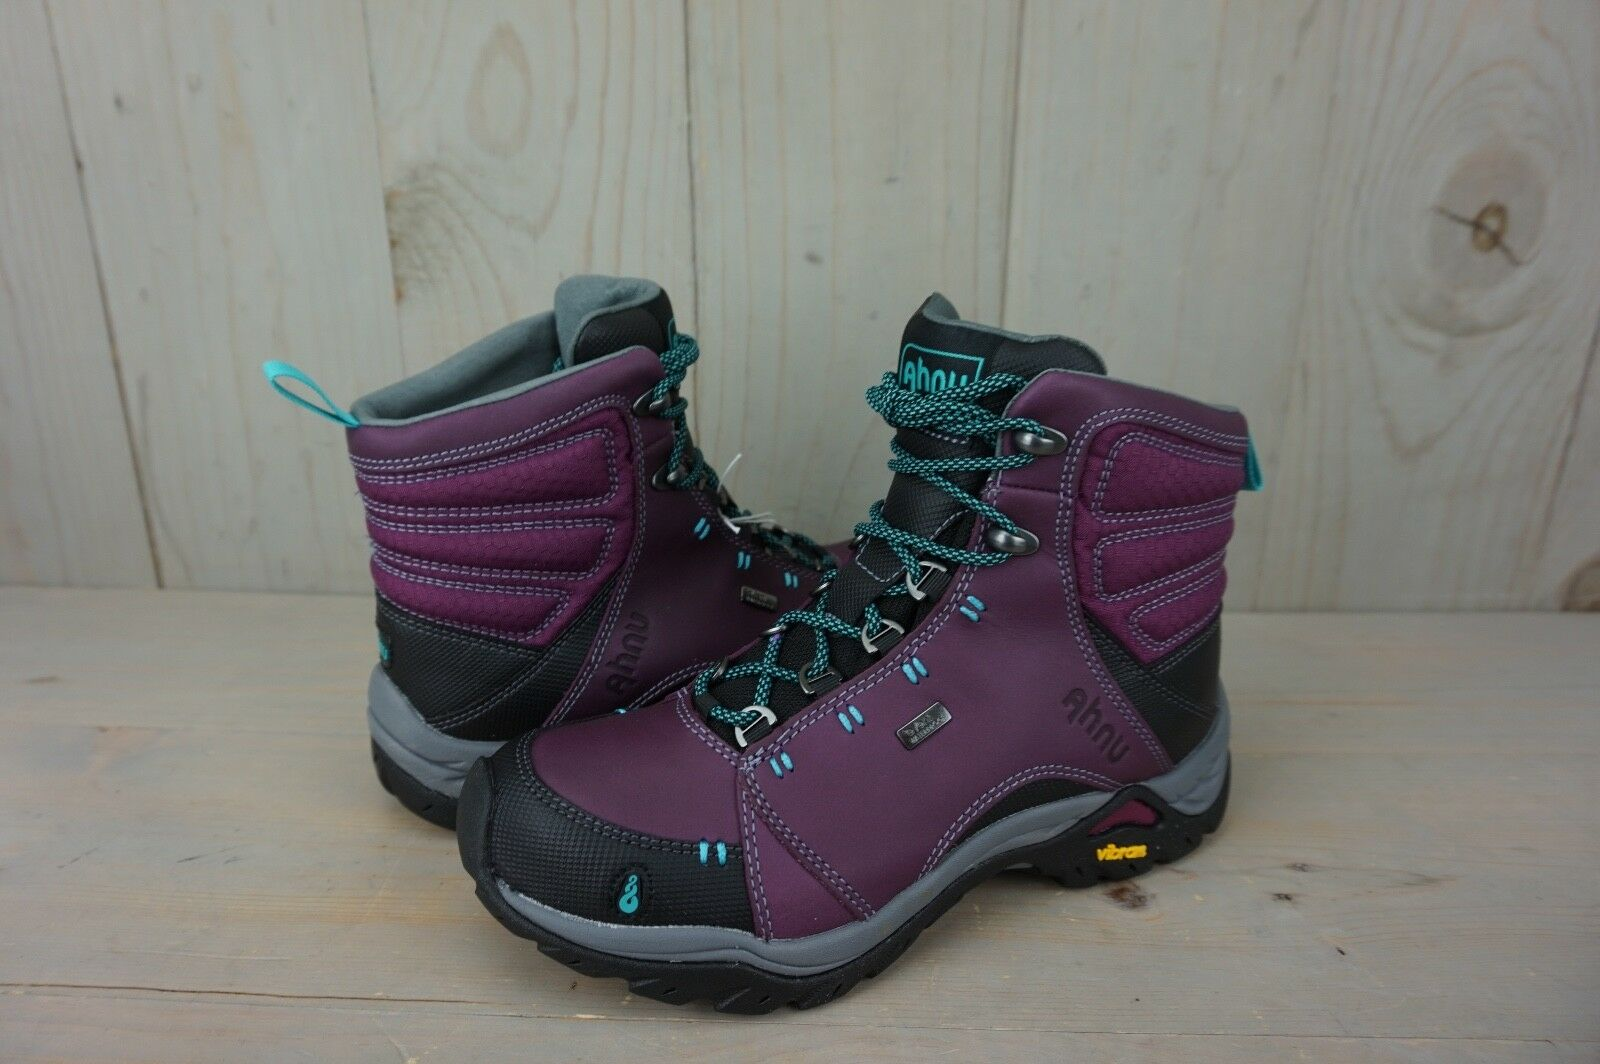 AHNU MONTARA   WP AMETHYST SMOKE WATERPROOF HIKING   stivali donna US  5.5 NIB